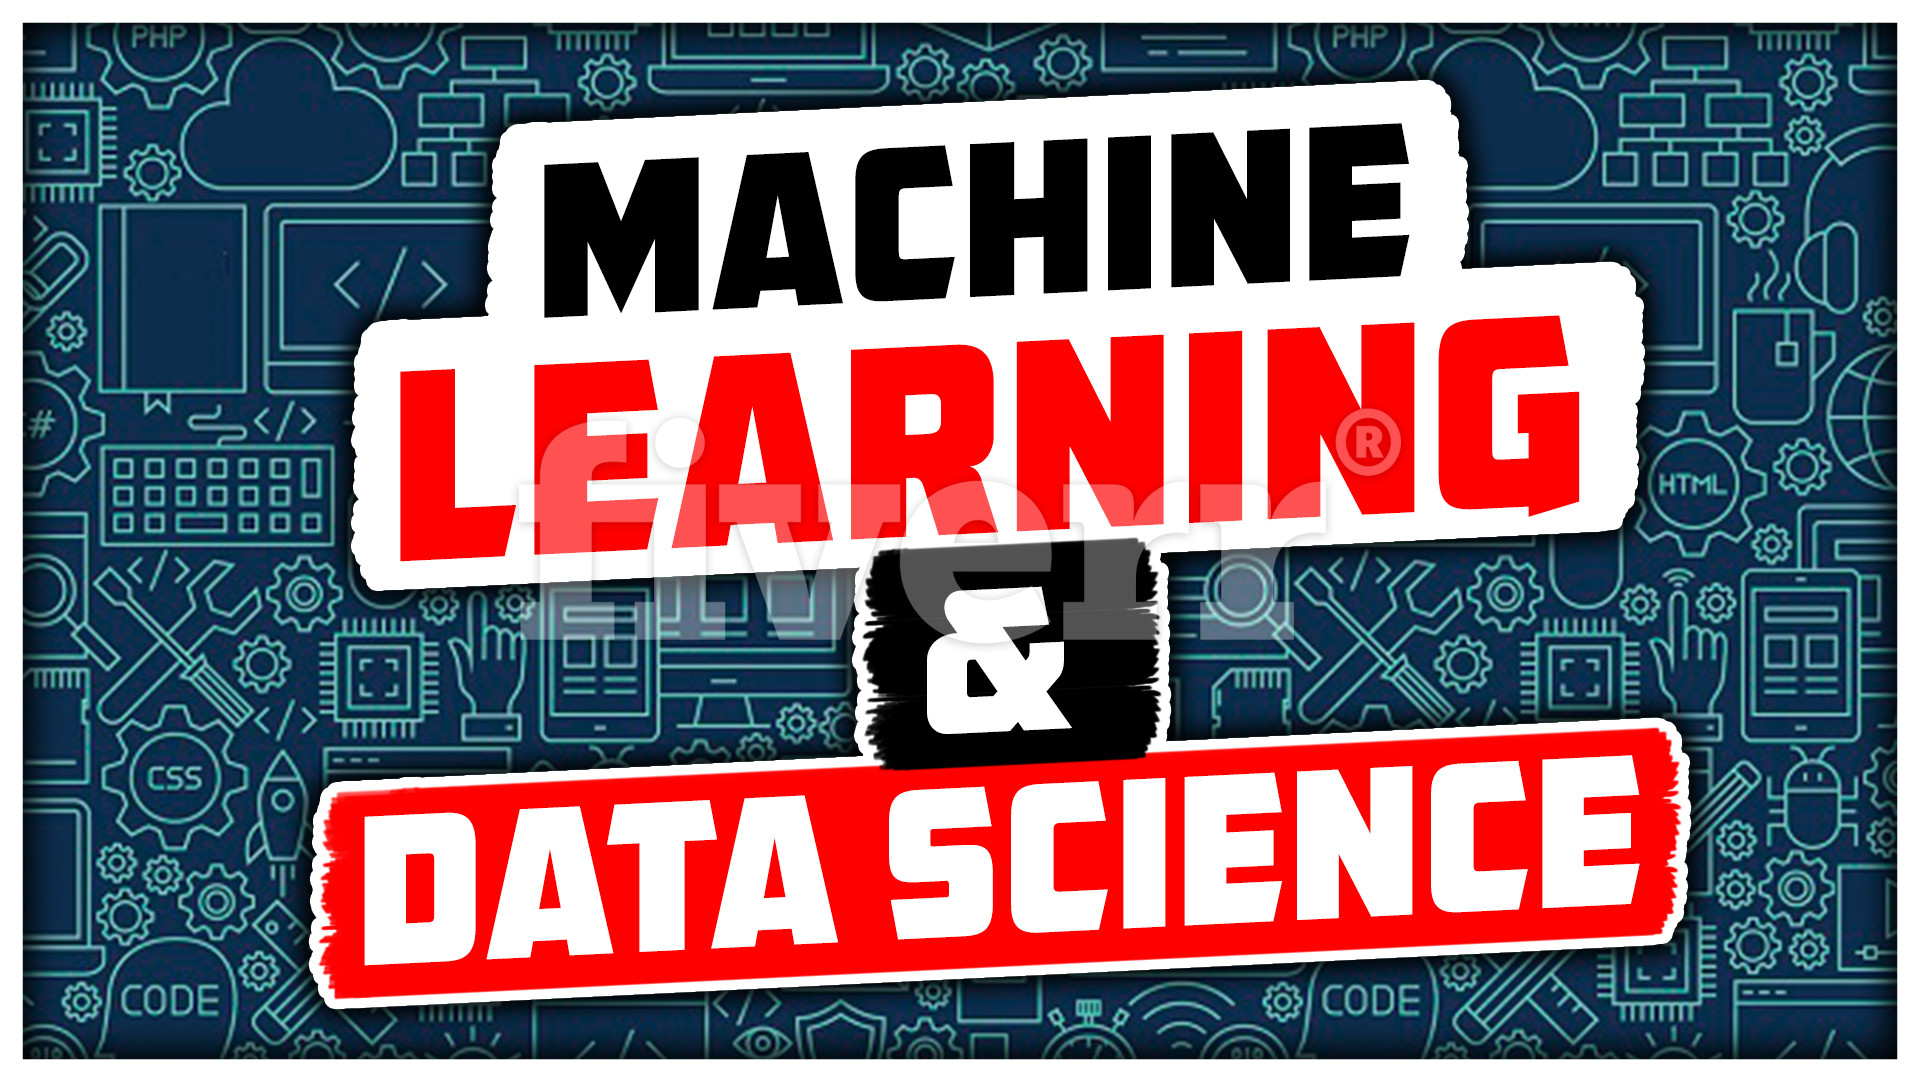 Machine learning datasets